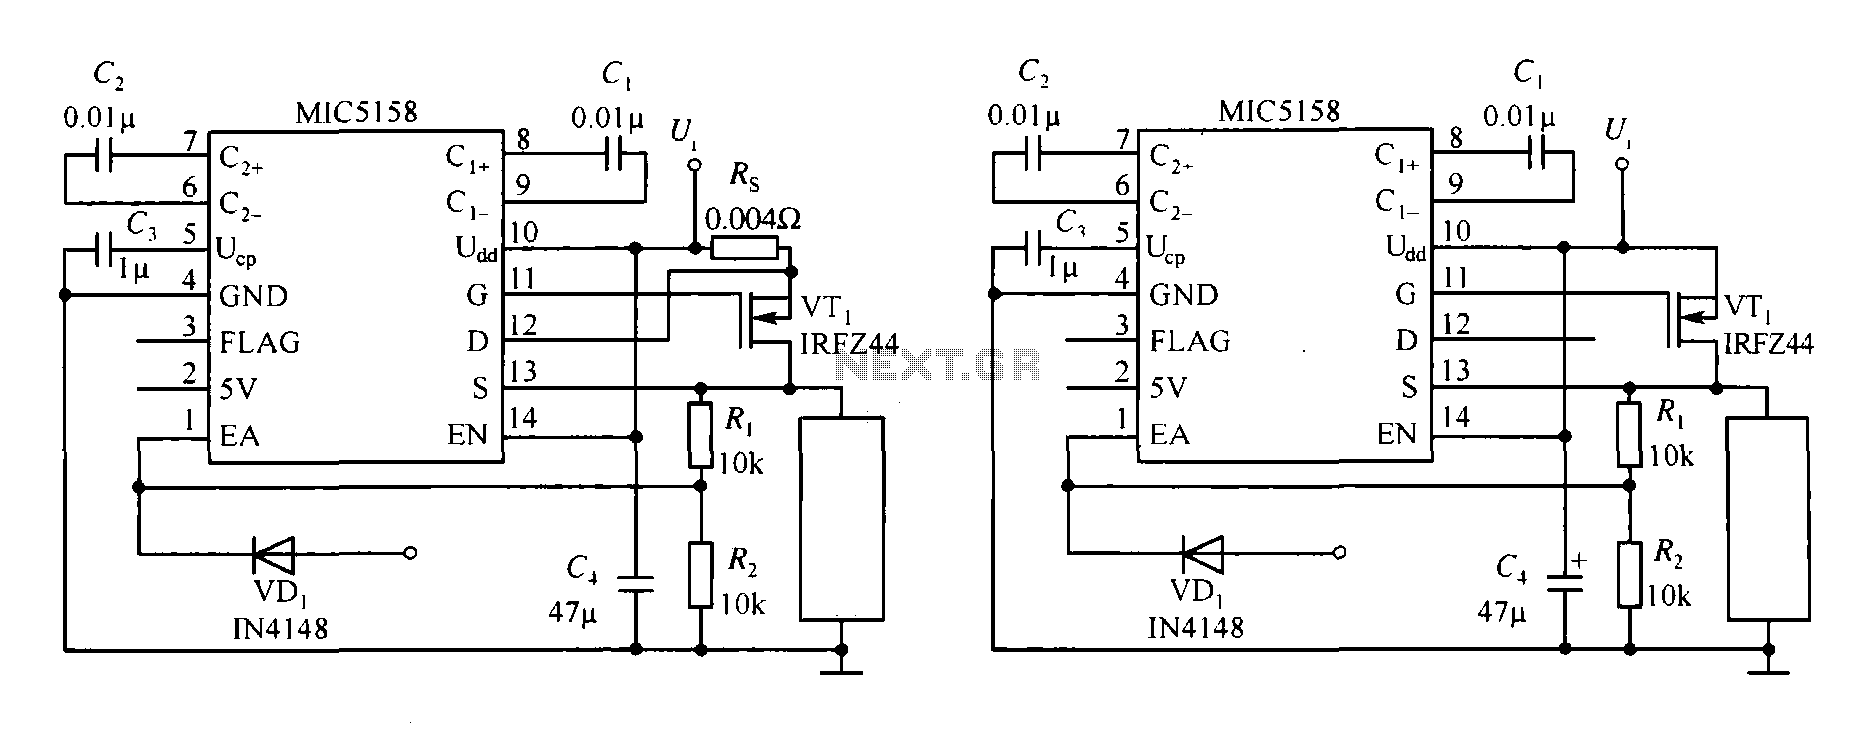 Switching Circuit Page 3 Other Circuits Car 15 Automotive Nextgr A Diagram Of High Speed Switch Constituted Triggered Rising Mic5158